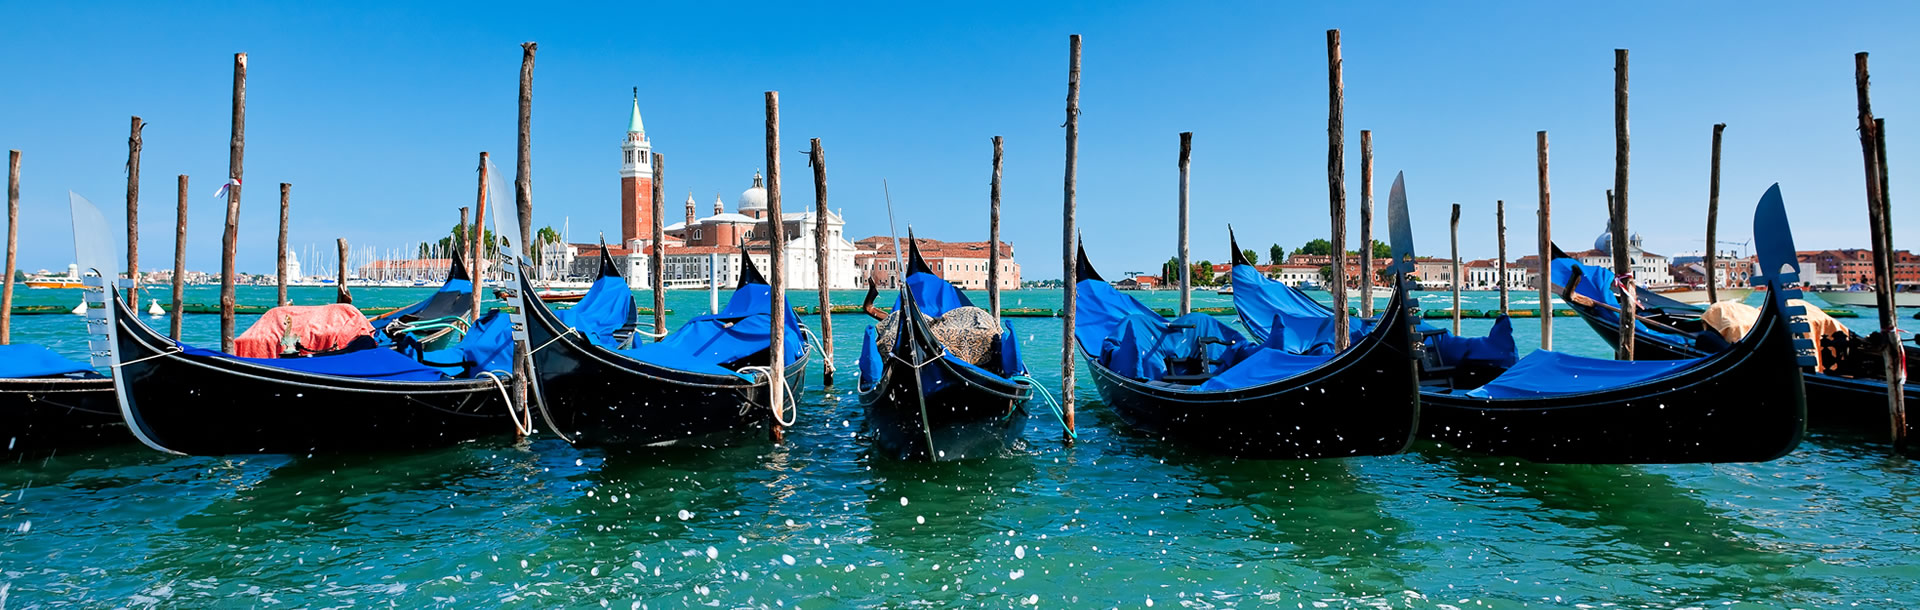 Travel Insurance Services Gondolas in Venice